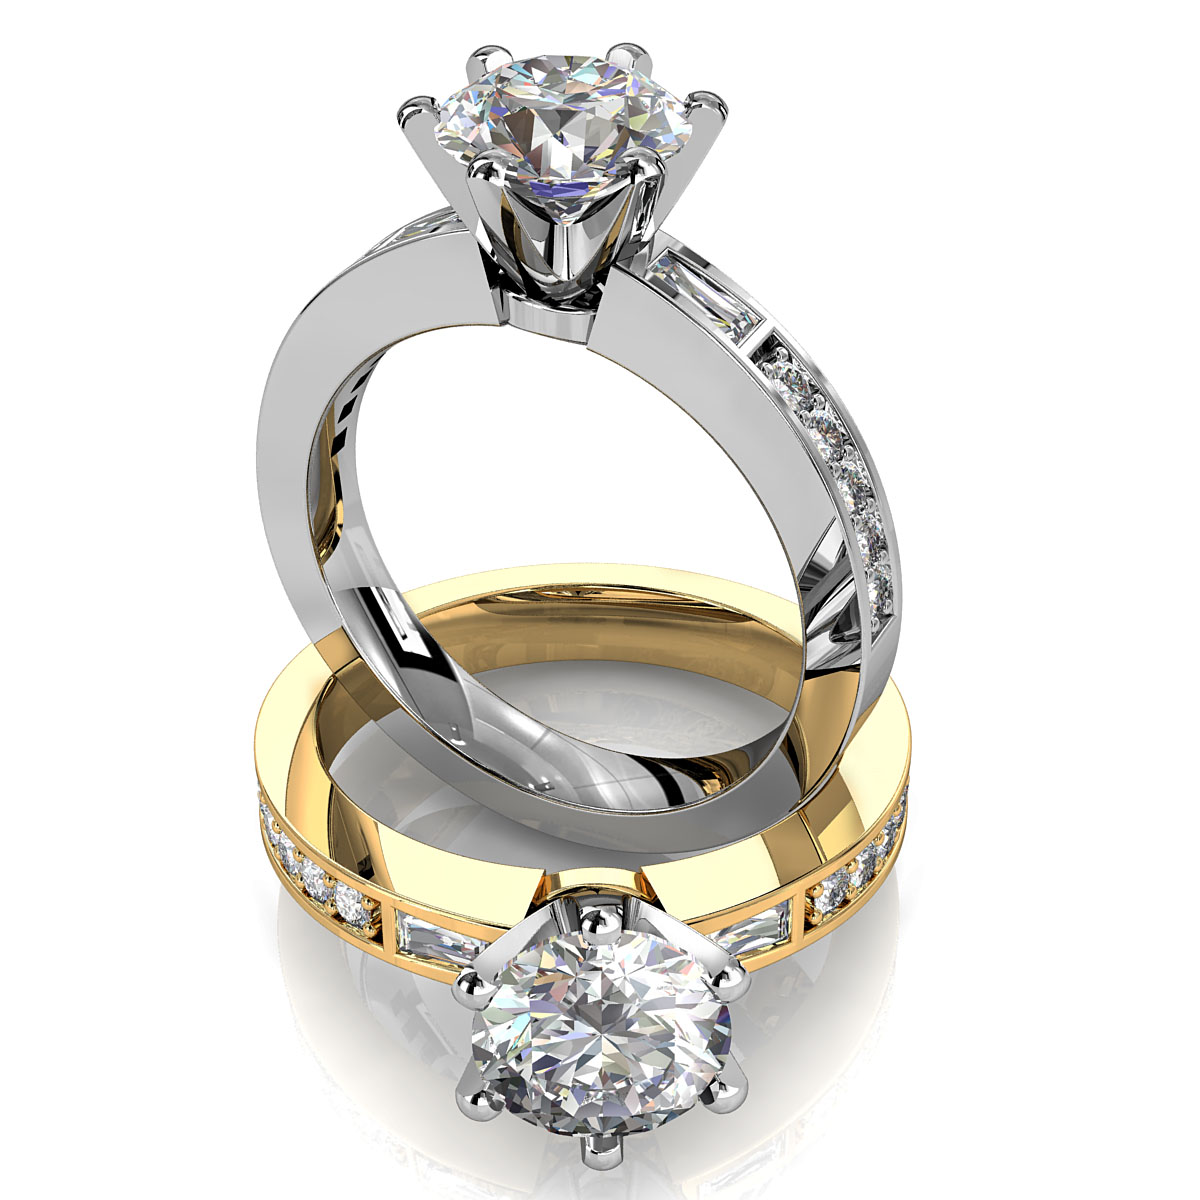 Round Brilliant Cut Solitaire Diamond Engagement Ring, 6 Claws Set with Tapered Baguette Side Stones on a Bead Set Straight Band.